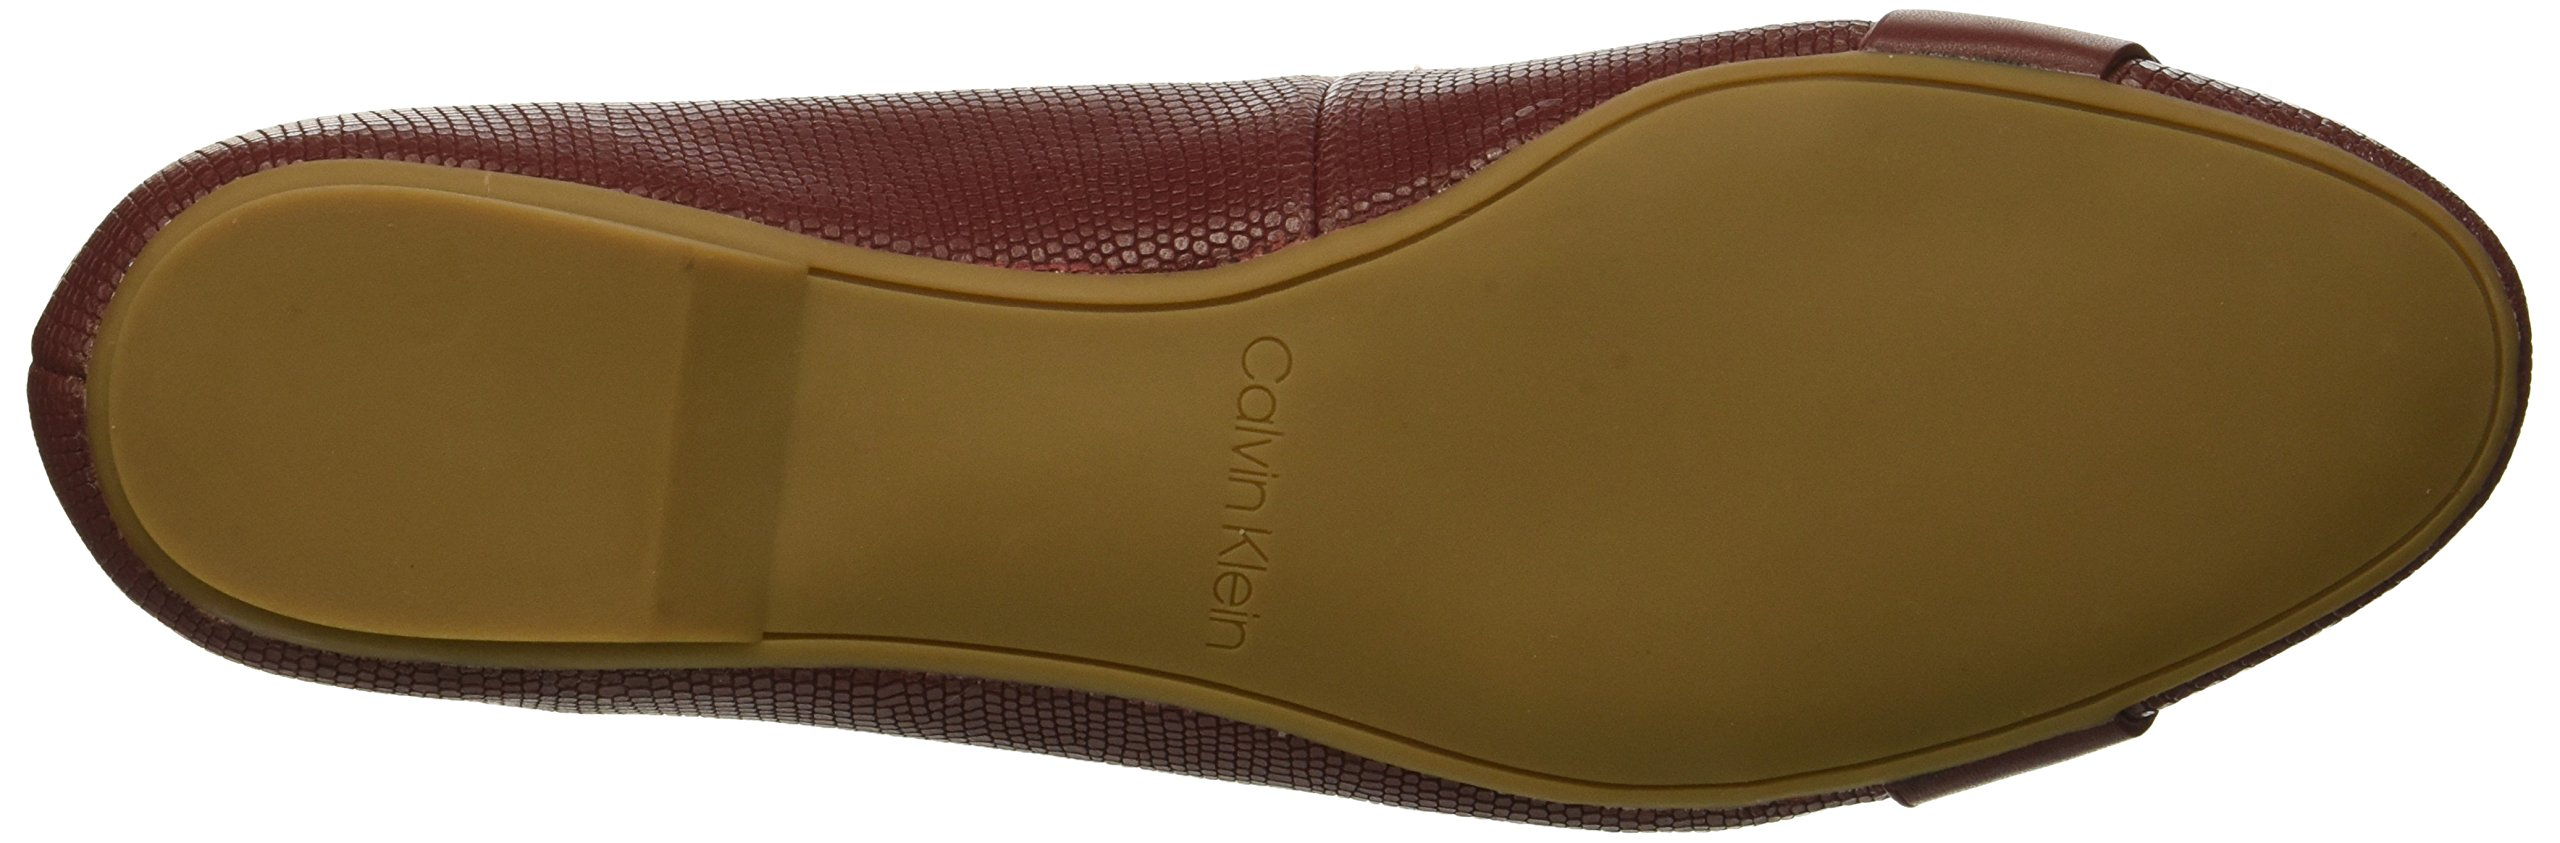 Calvin-Klein-Women-039-s-Oneta-Ballet-Flat-Black-5-M-Choose-SZ-color thumbnail 14